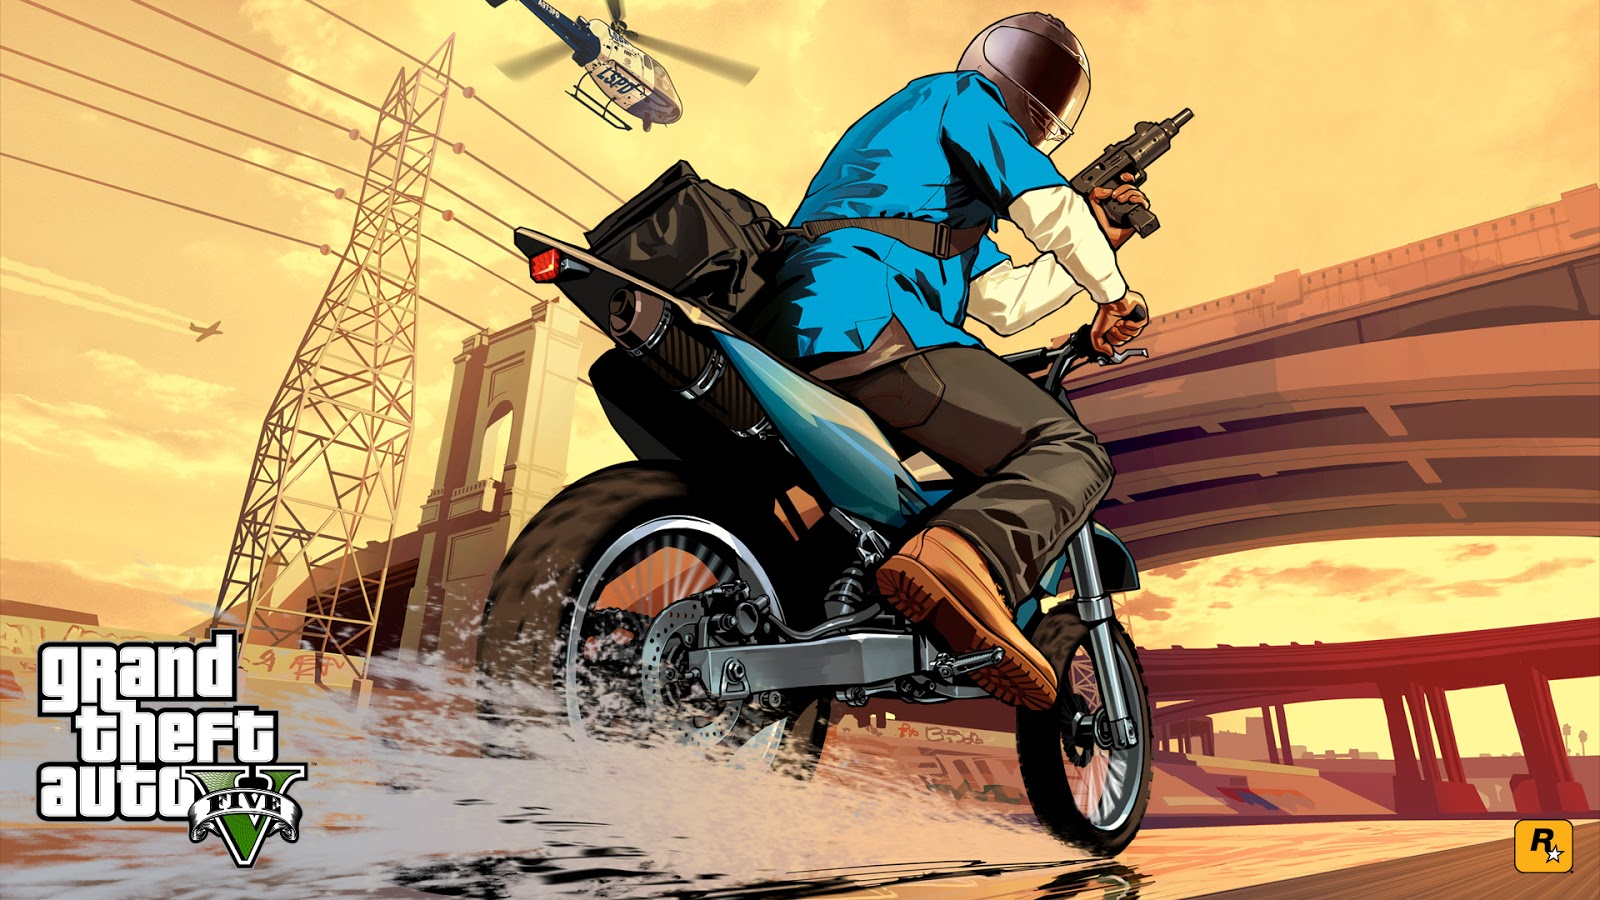 gta v Gta 5 wiki -the ultimate resource for cheats, codes, guides and more for grand theft auto v on the ps3, xbox 360, ps4, xbox one and pc.